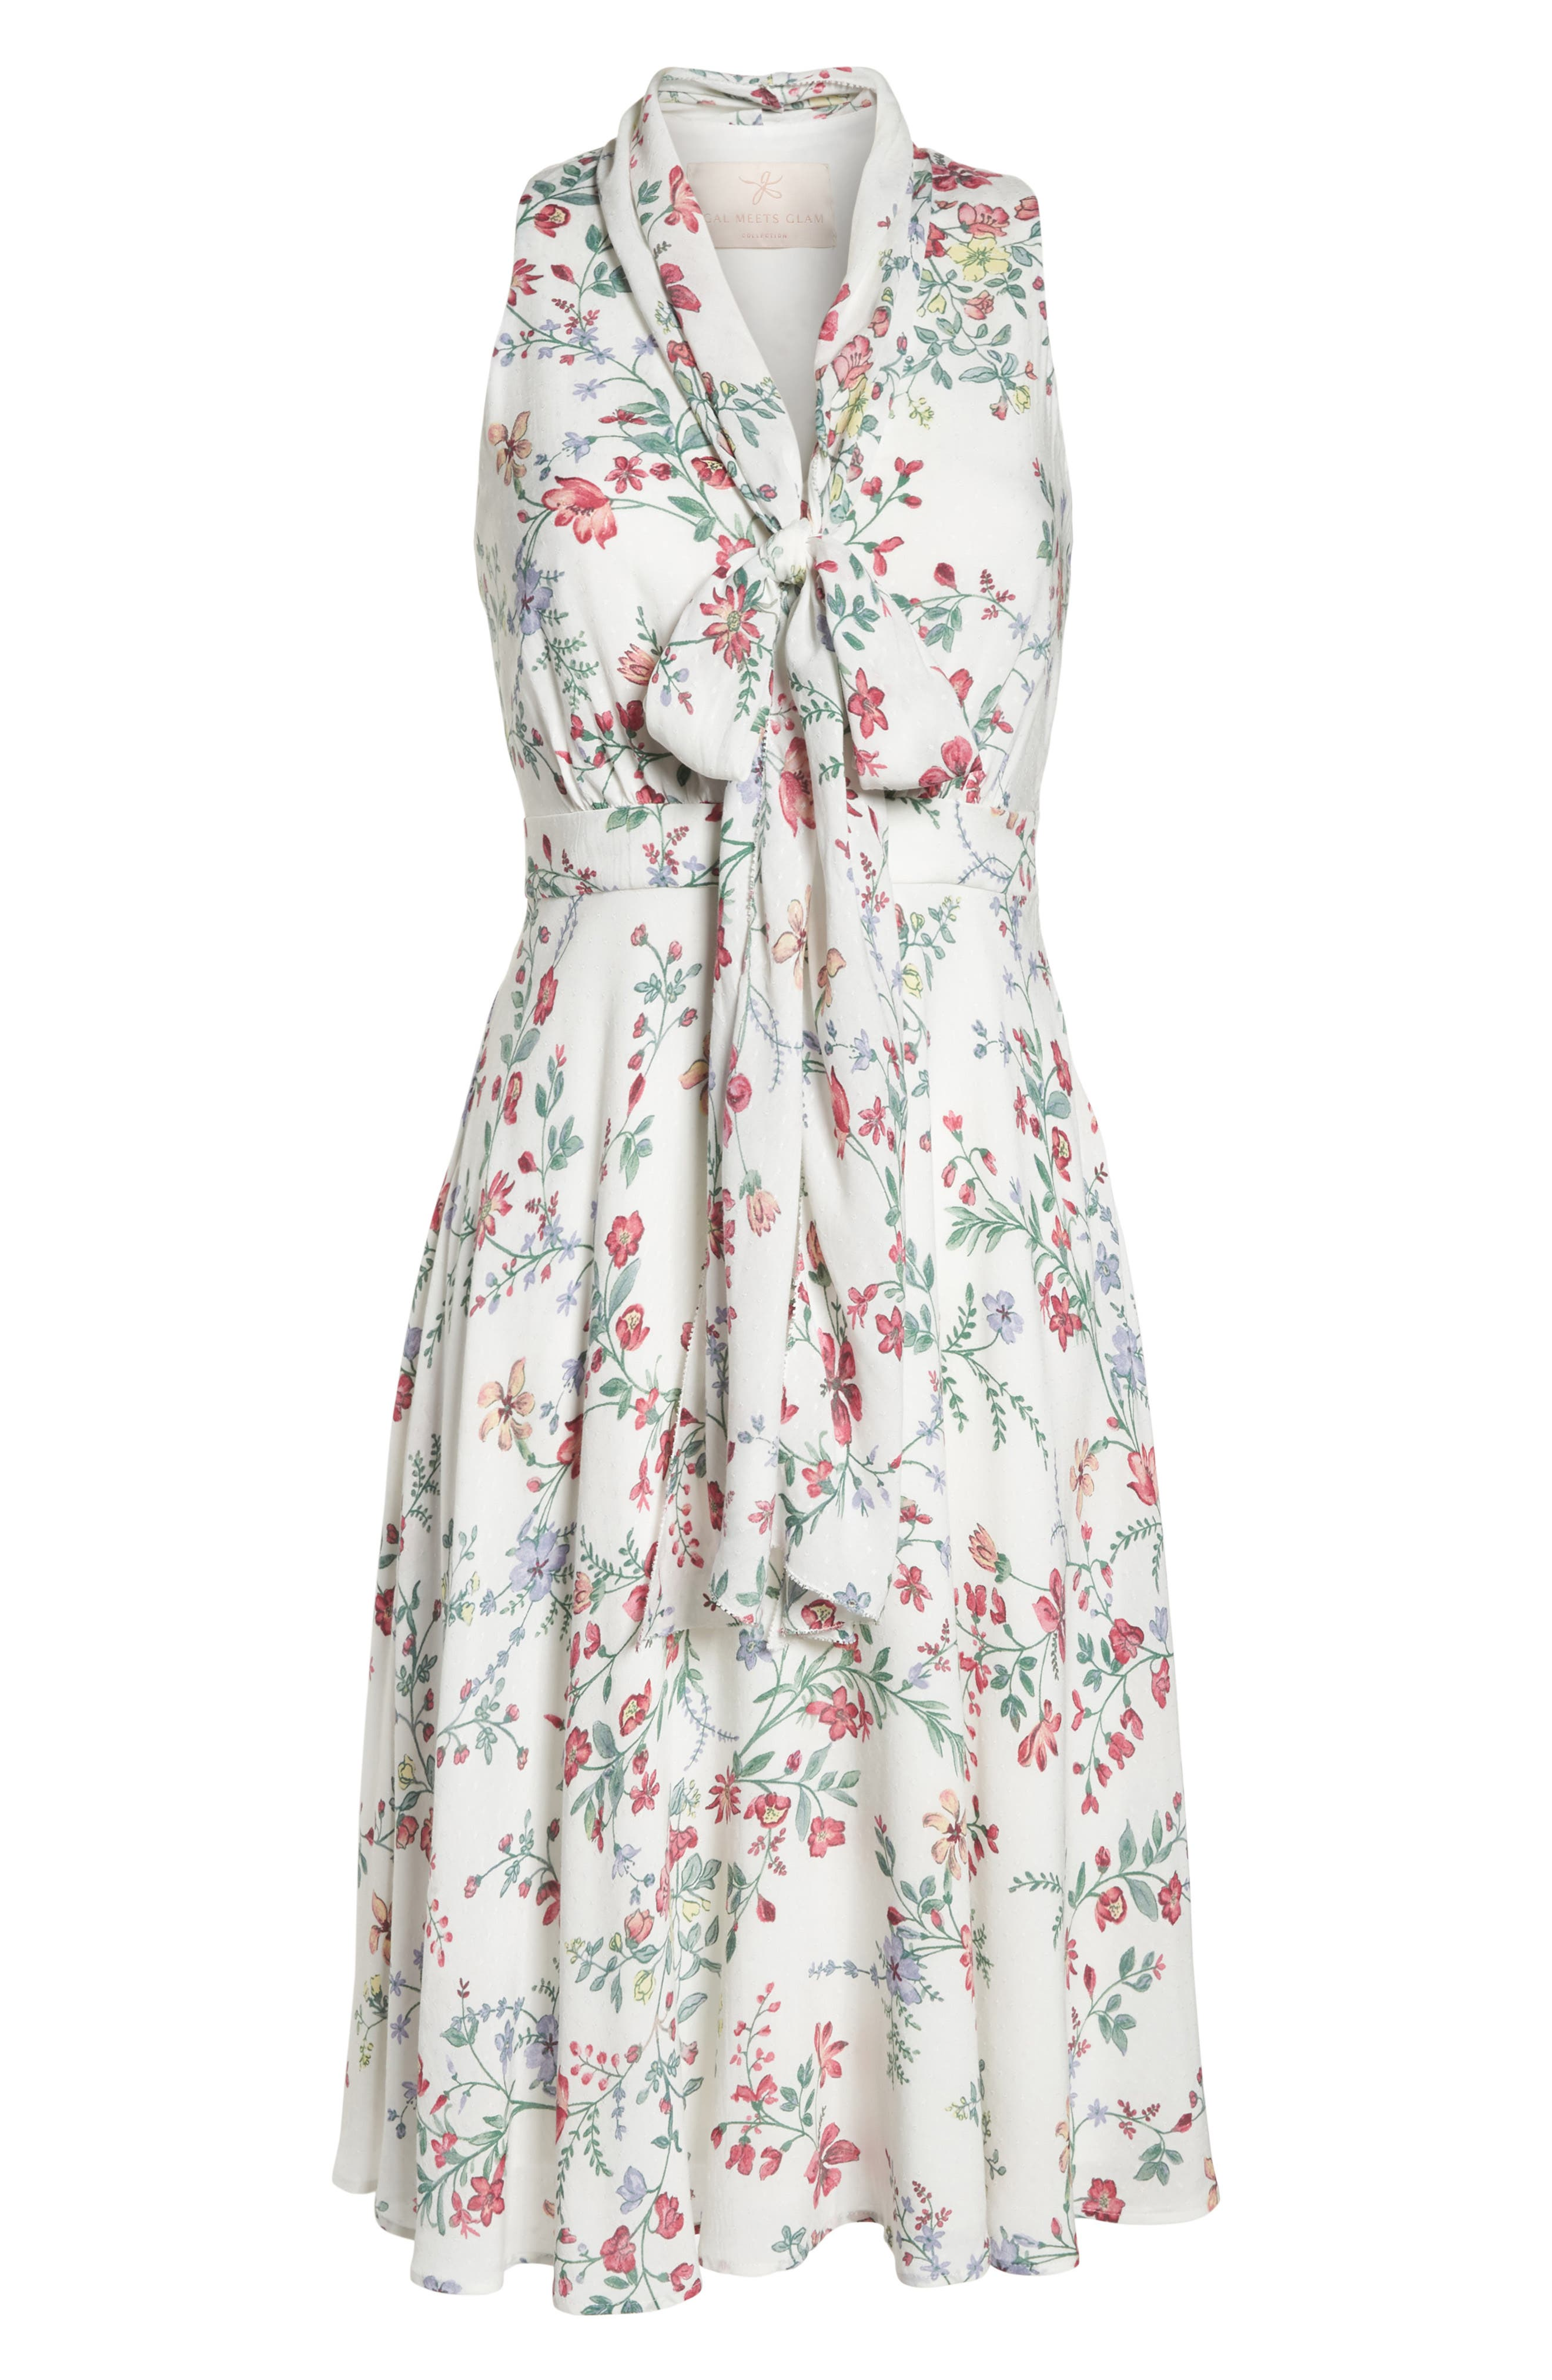 Alexis Delicate Blossom Print Tie Neck Dress,                             Alternate thumbnail 7, color,                             650